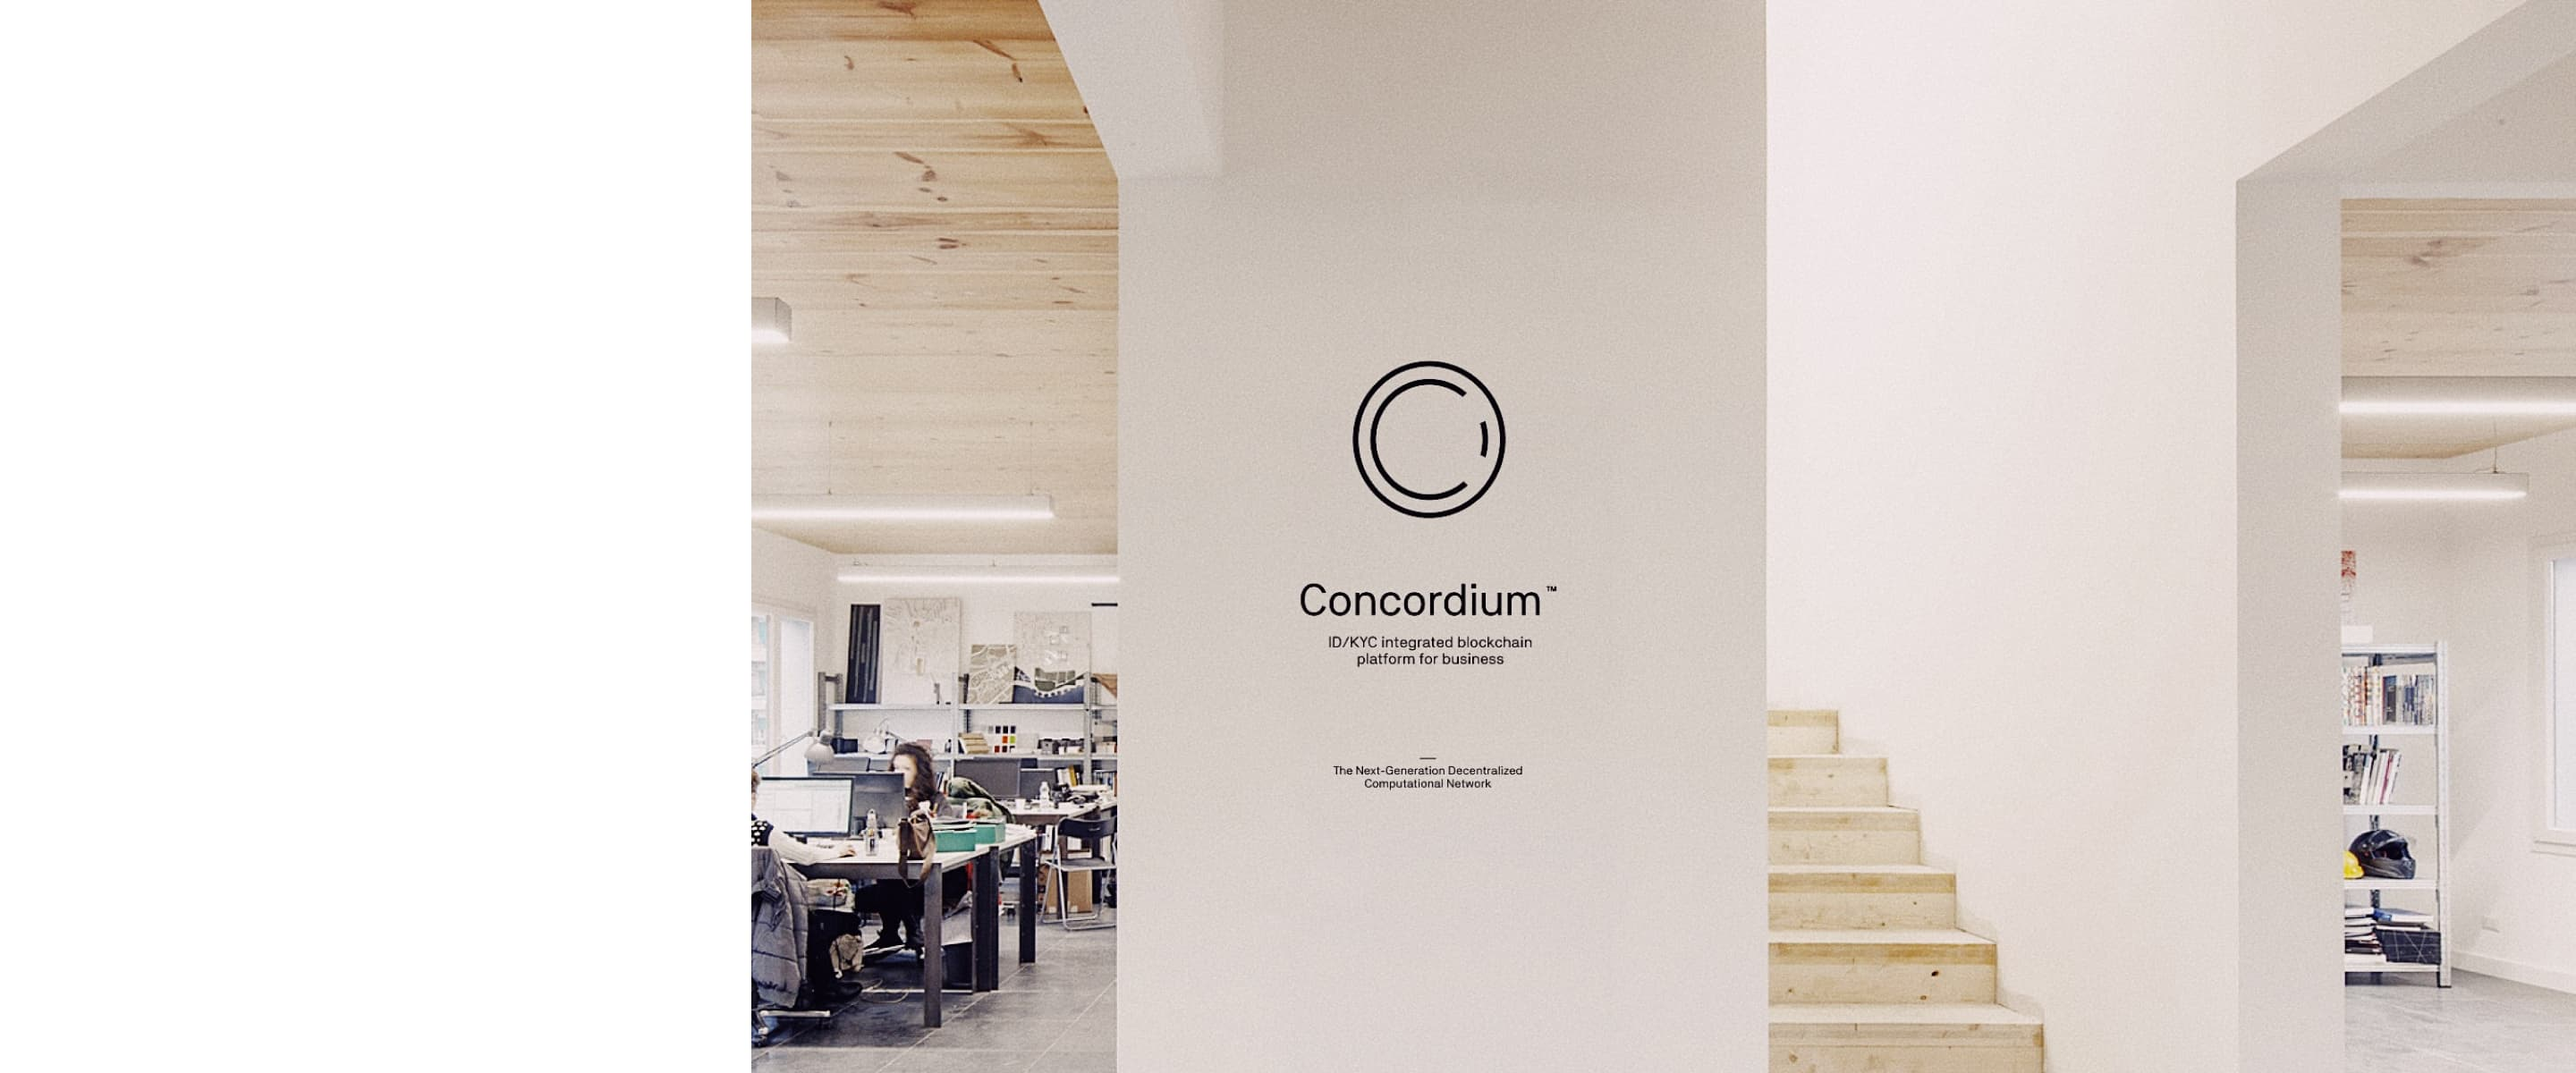 Concordium-Identity-Logo-Application-1